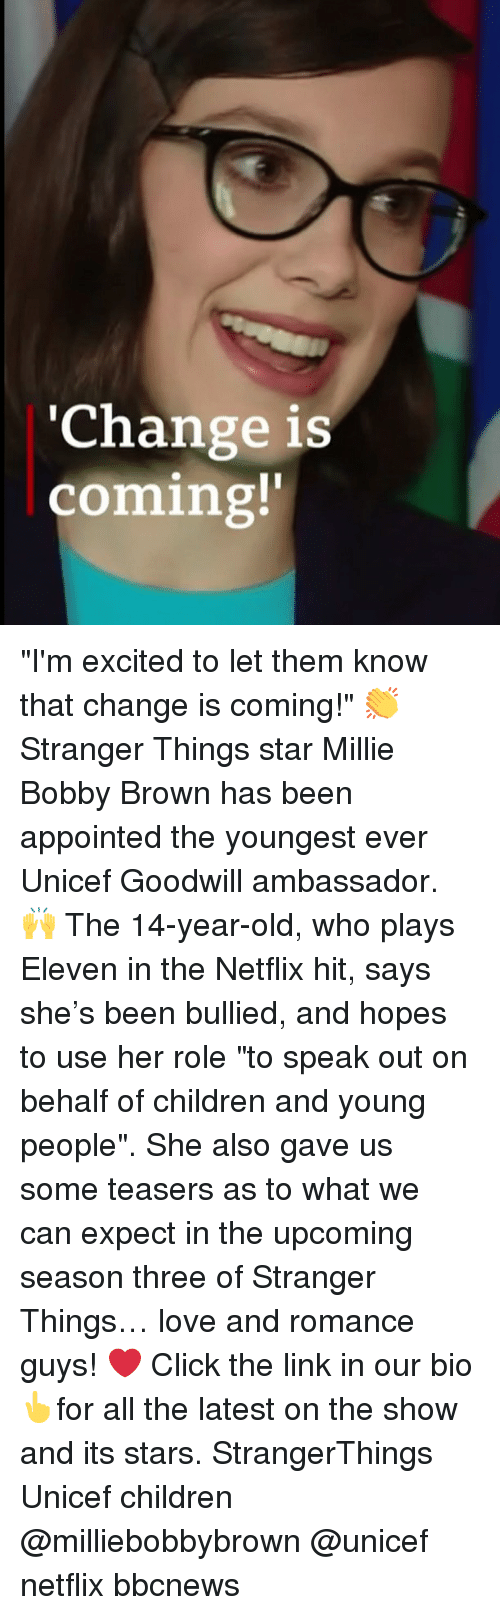 """Children, Click, and Love: 'Change is  coming!' """"I'm excited to let them know that change is coming!"""" 👏 Stranger Things star Millie Bobby Brown has been appointed the youngest ever Unicef Goodwill ambassador. 🙌 The 14-year-old, who plays Eleven in the Netflix hit, says she's been bullied, and hopes to use her role """"to speak out on behalf of children and young people"""". She also gave us some teasers as to what we can expect in the upcoming season three of Stranger Things… love and romance guys! ❤️ Click the link in our bio👆for all the latest on the show and its stars. StrangerThings Unicef children @milliebobbybrown @unicef netflix bbcnews"""